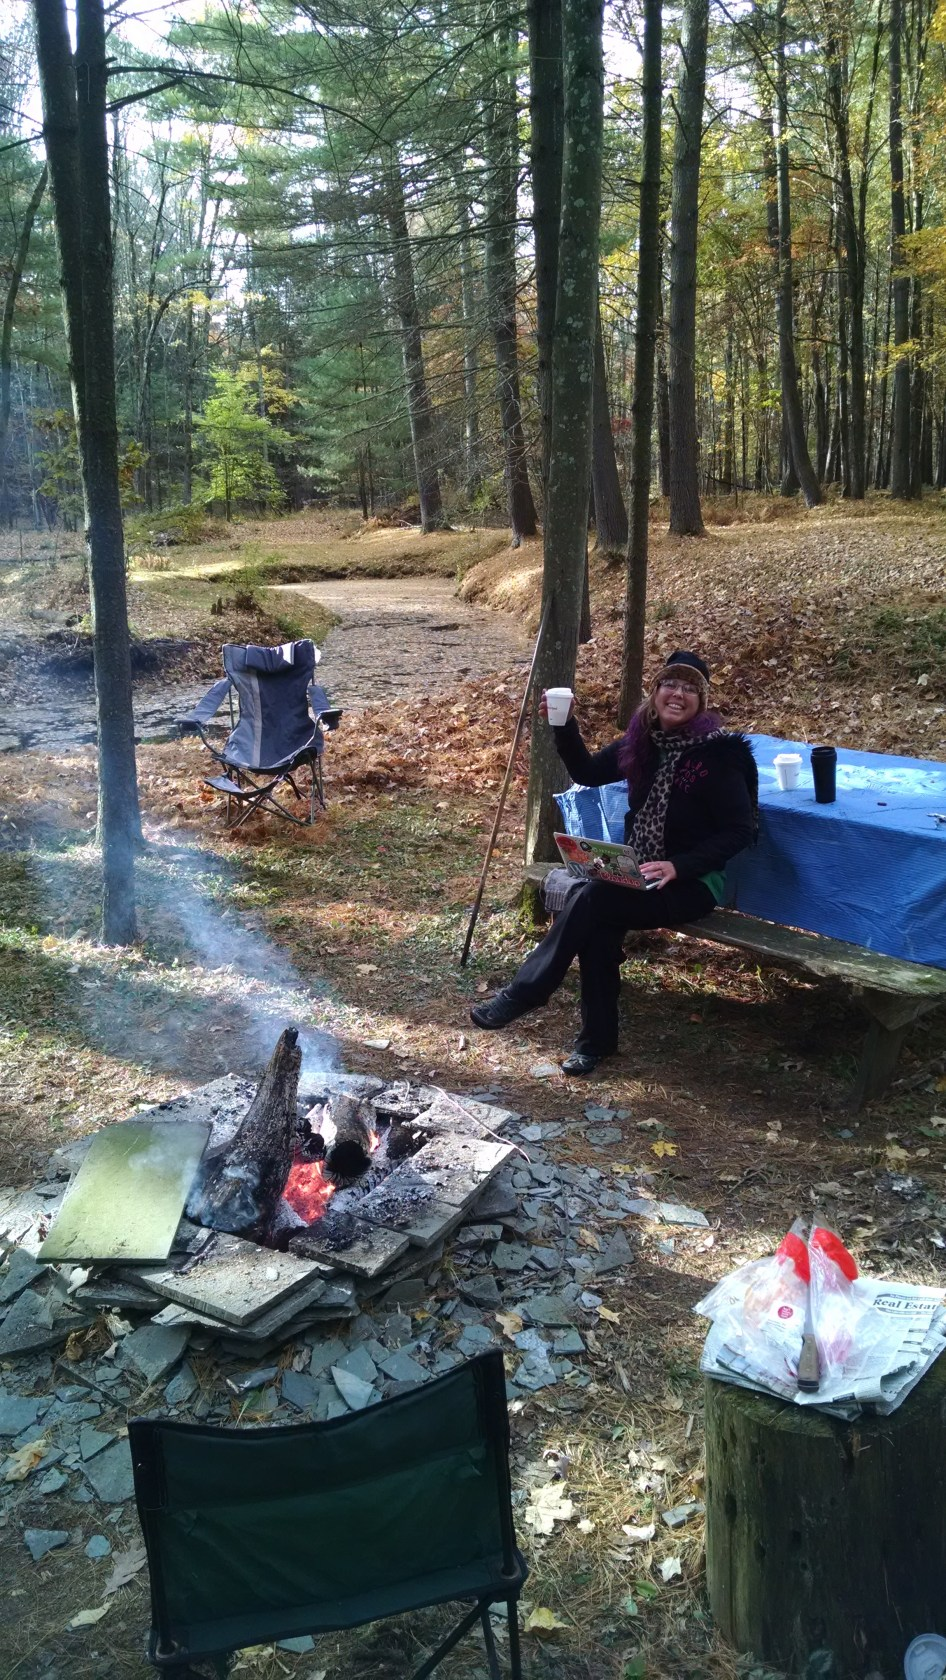 Camping on a workday. Life is great!